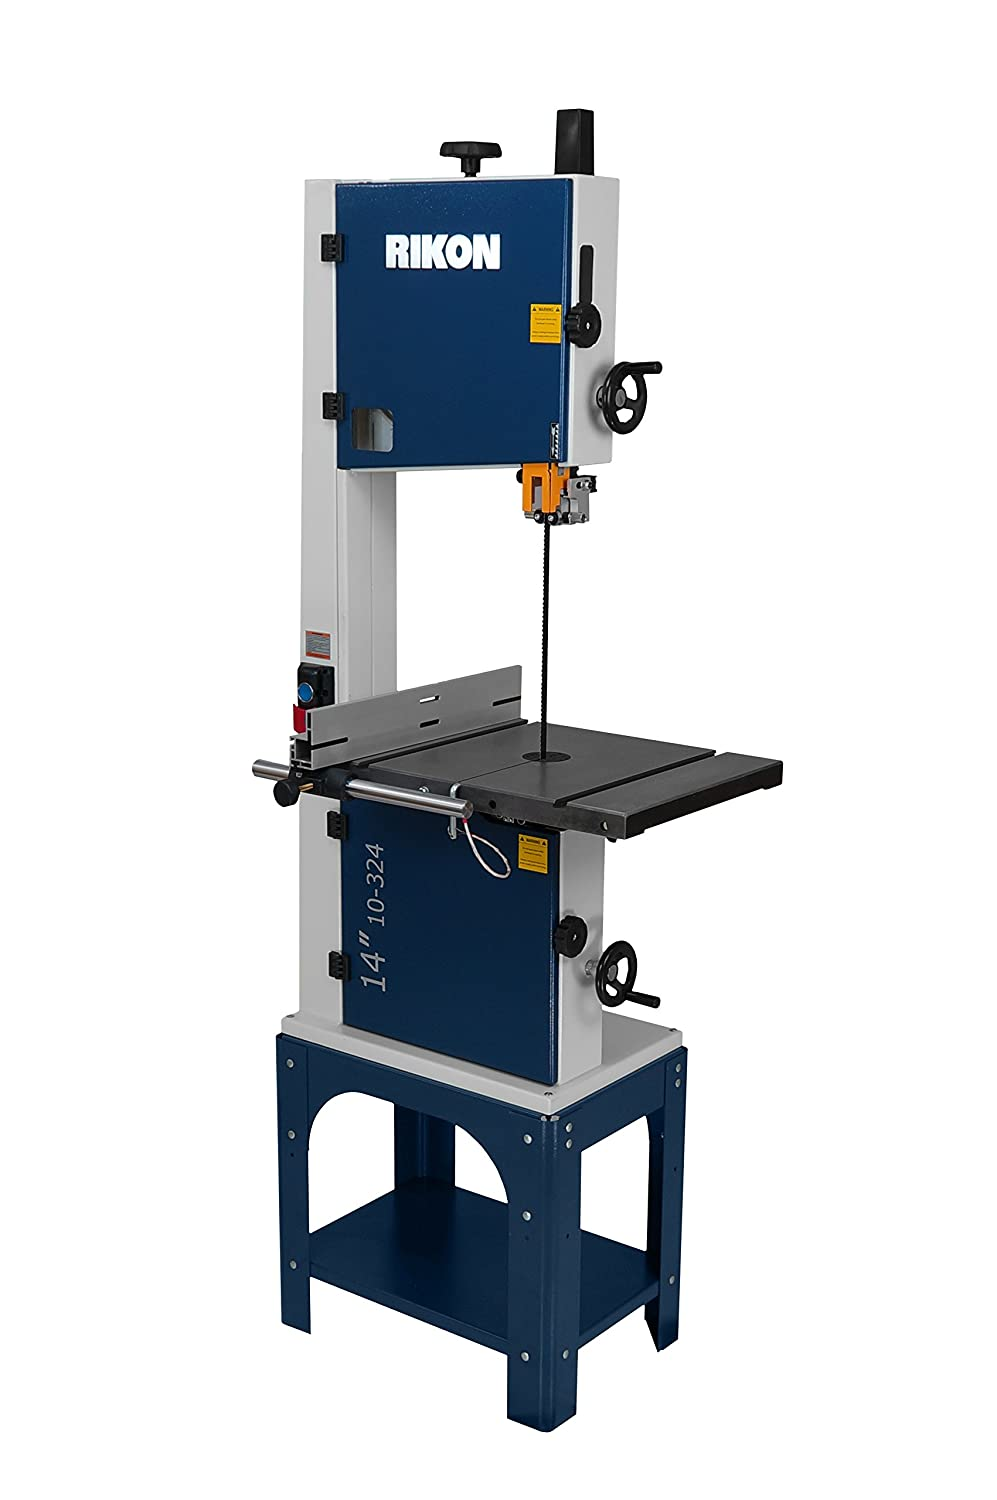 """2. RIKON Power Tools 10-324 14"""" Open Stand Bandsaw"""